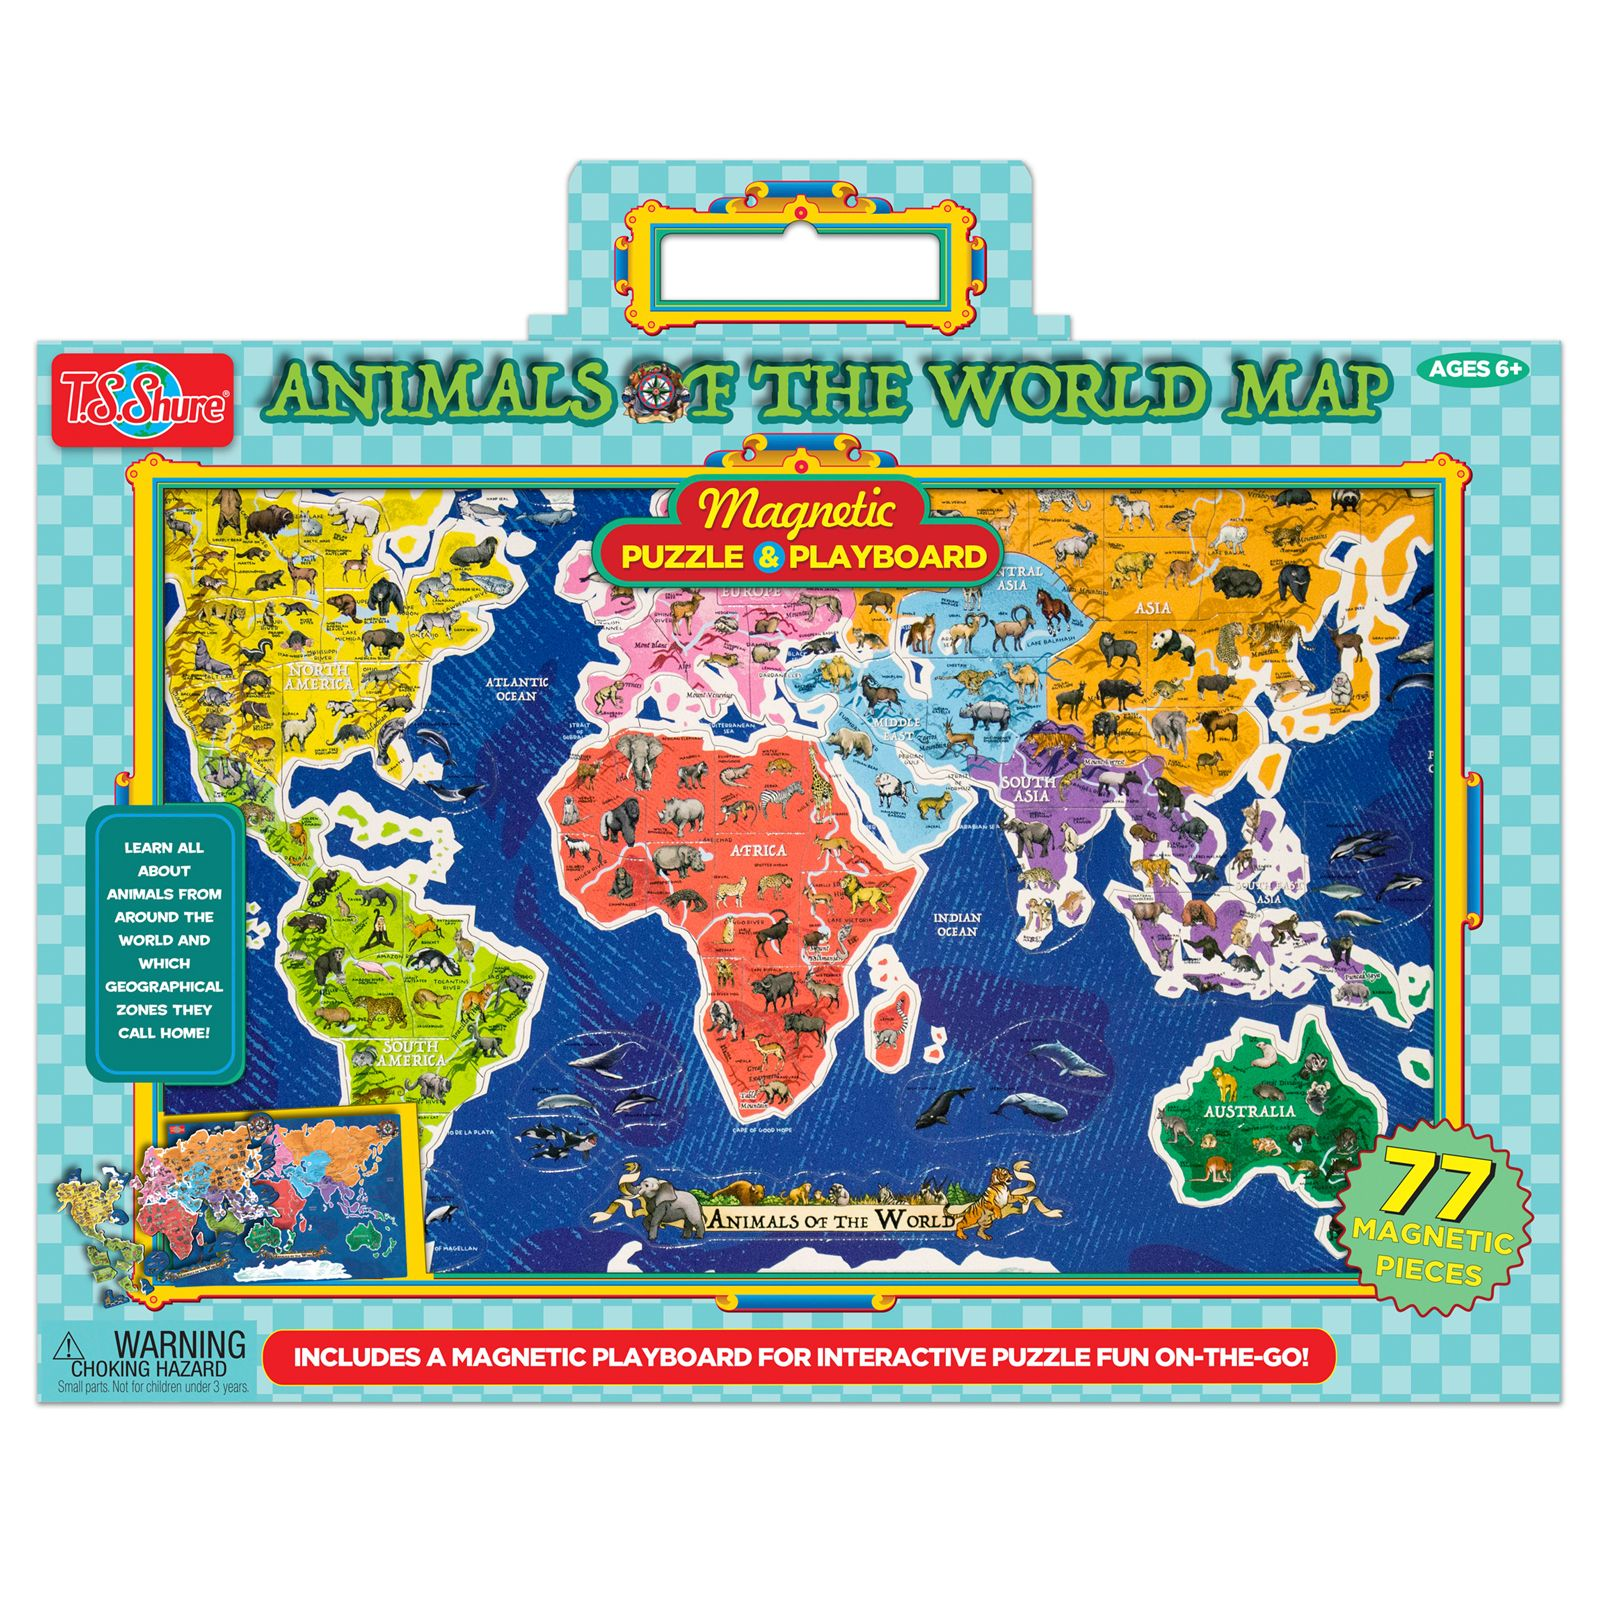 TS Shure Animals of the World Map Magnetic Playboard and ...